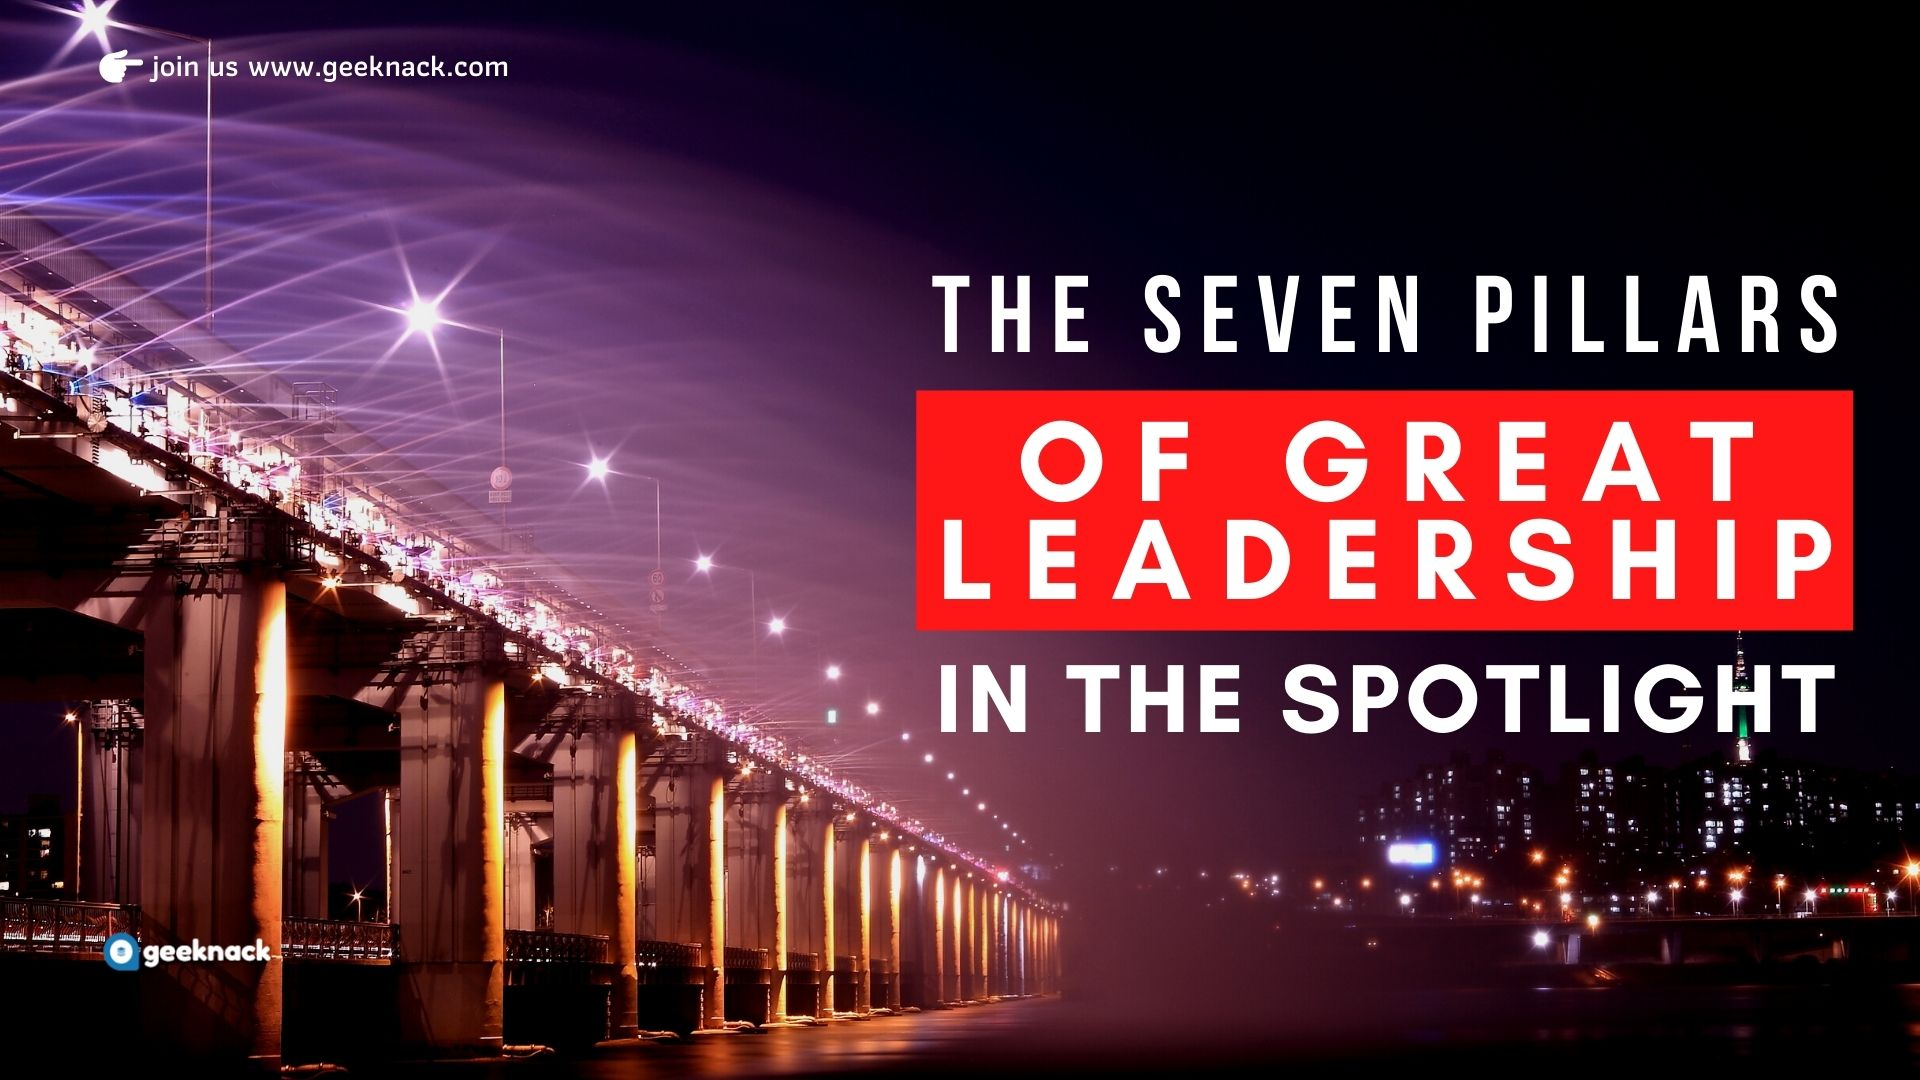 The Seven Pillars Of Great Leadership In the Spotlight